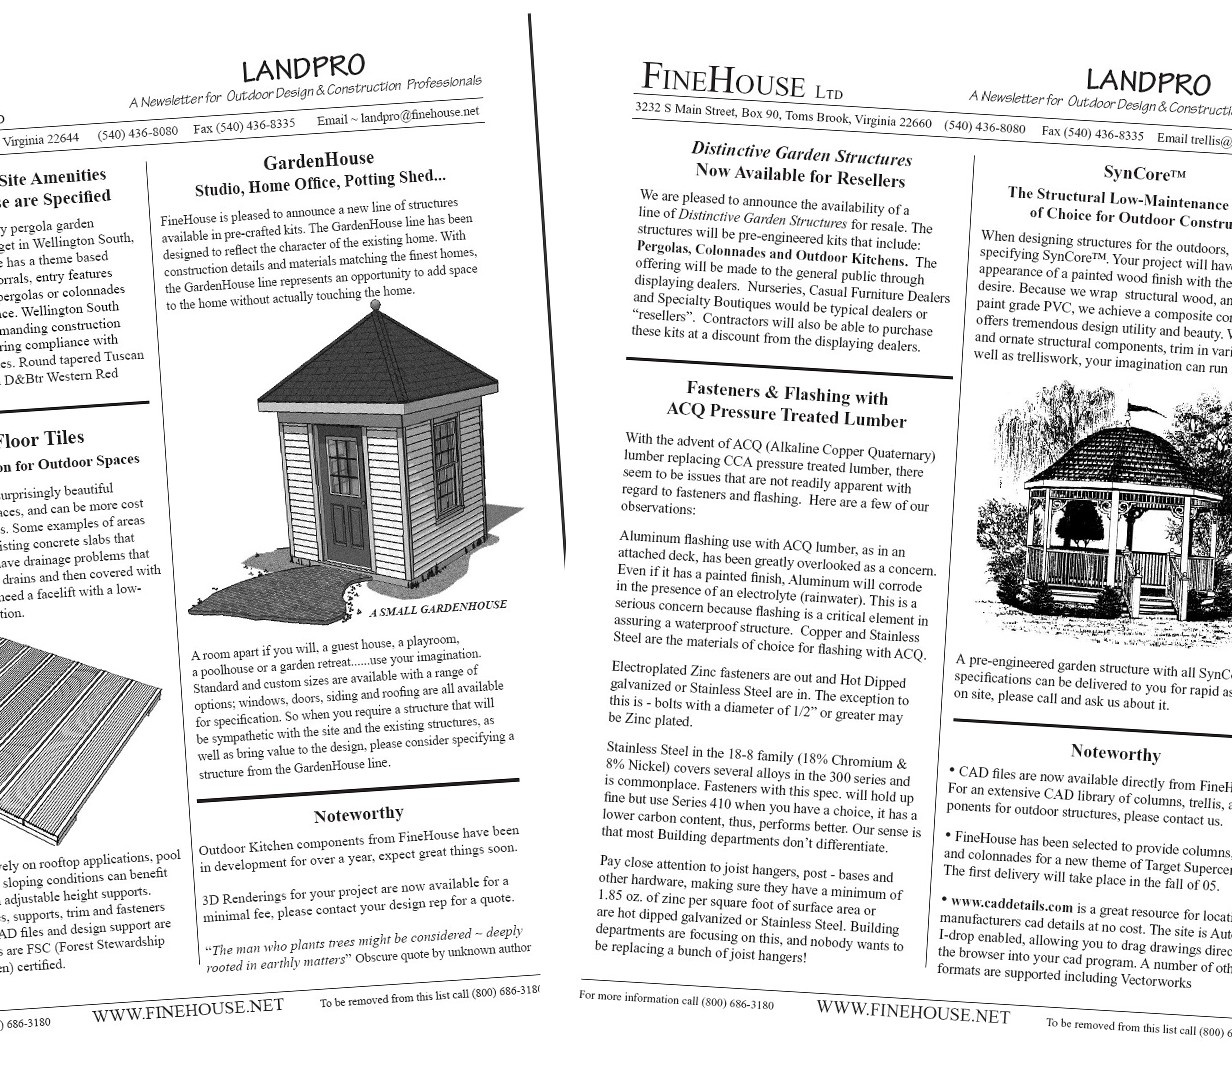 News Letter about garden architecture